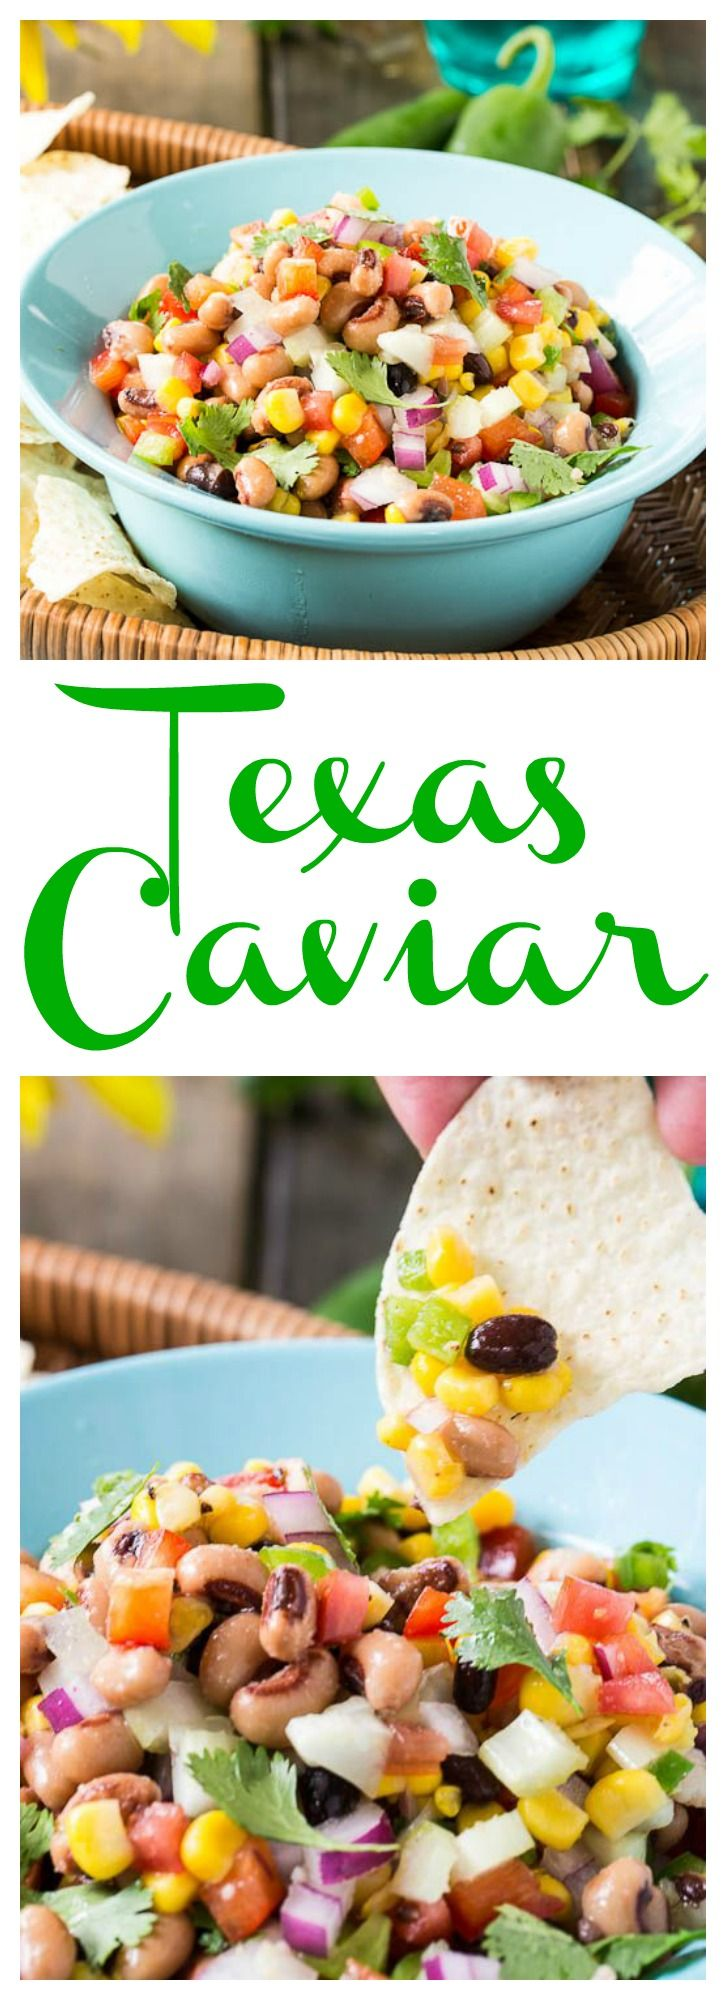 Texas Caviar Bean Dip - with black-eyed peas this is the perfect dip to bring good luck for the New Year!